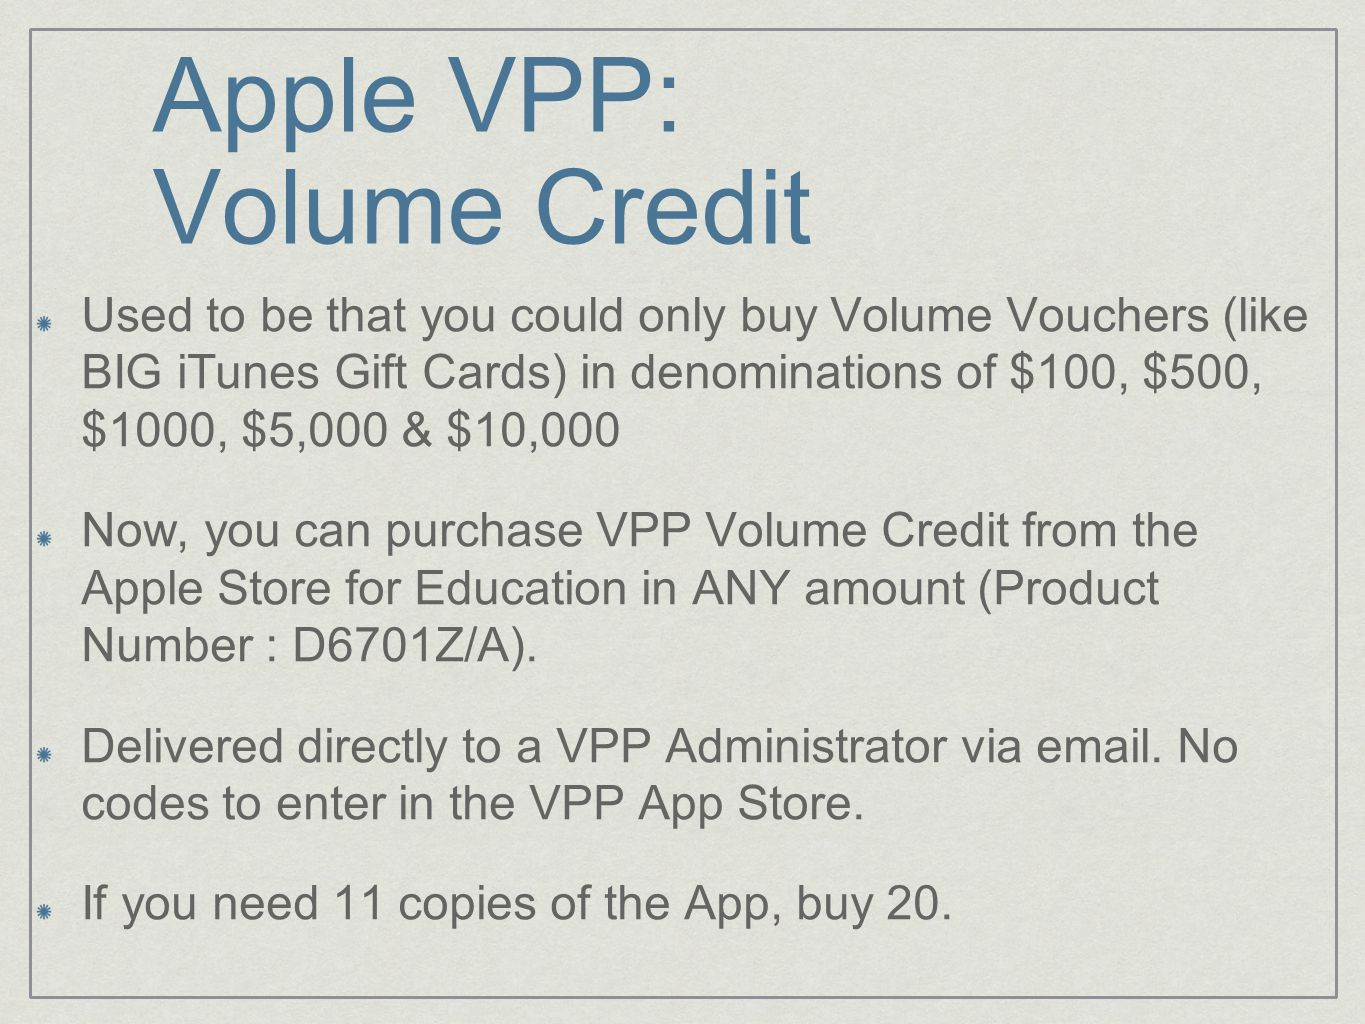 Apple VPP: Volume Credit Used to be that you could only buy Volume Vouchers (like BIG iTunes Gift Cards) in denominations of $100, $500, $1000, $5,000